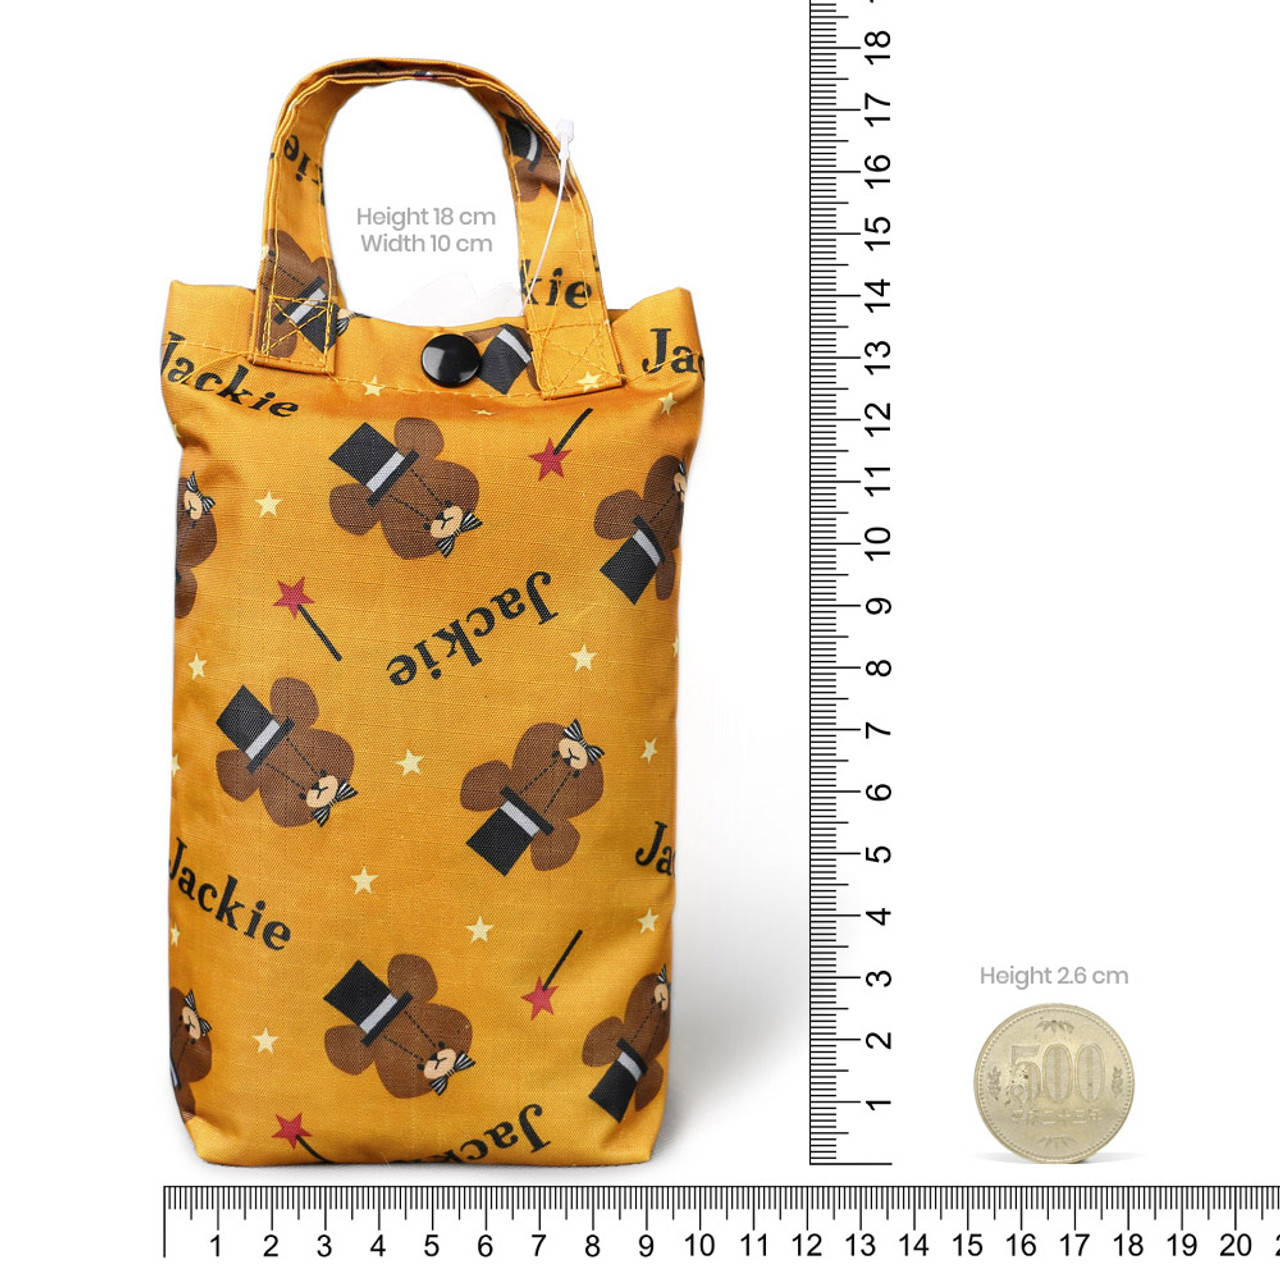 The Bears' School Jackie Shopping Bag - Brown ( Folded Mode Proportion )